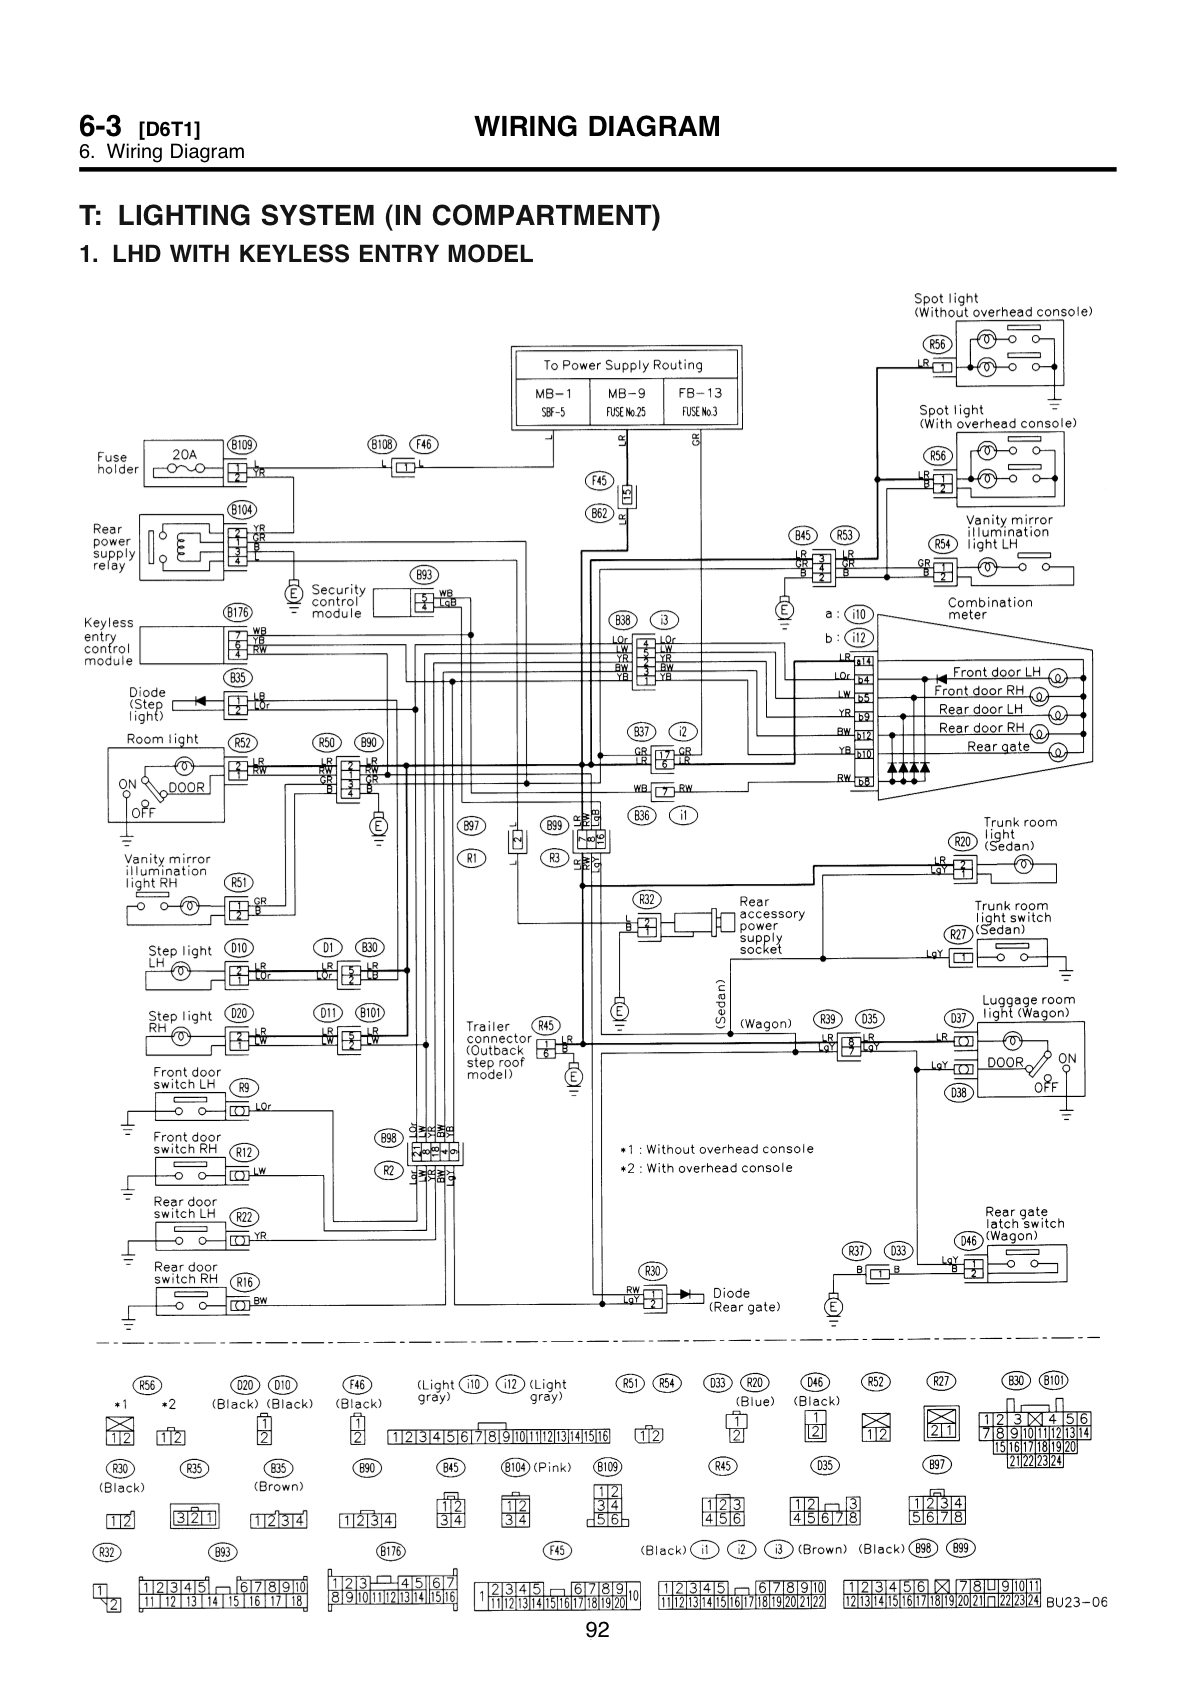 wiring_diagram1?resize\=840%2C1187 diagrams 554363 kramer single humbucker wiring diagram kramer kramer pacer wiring diagram at mr168.co